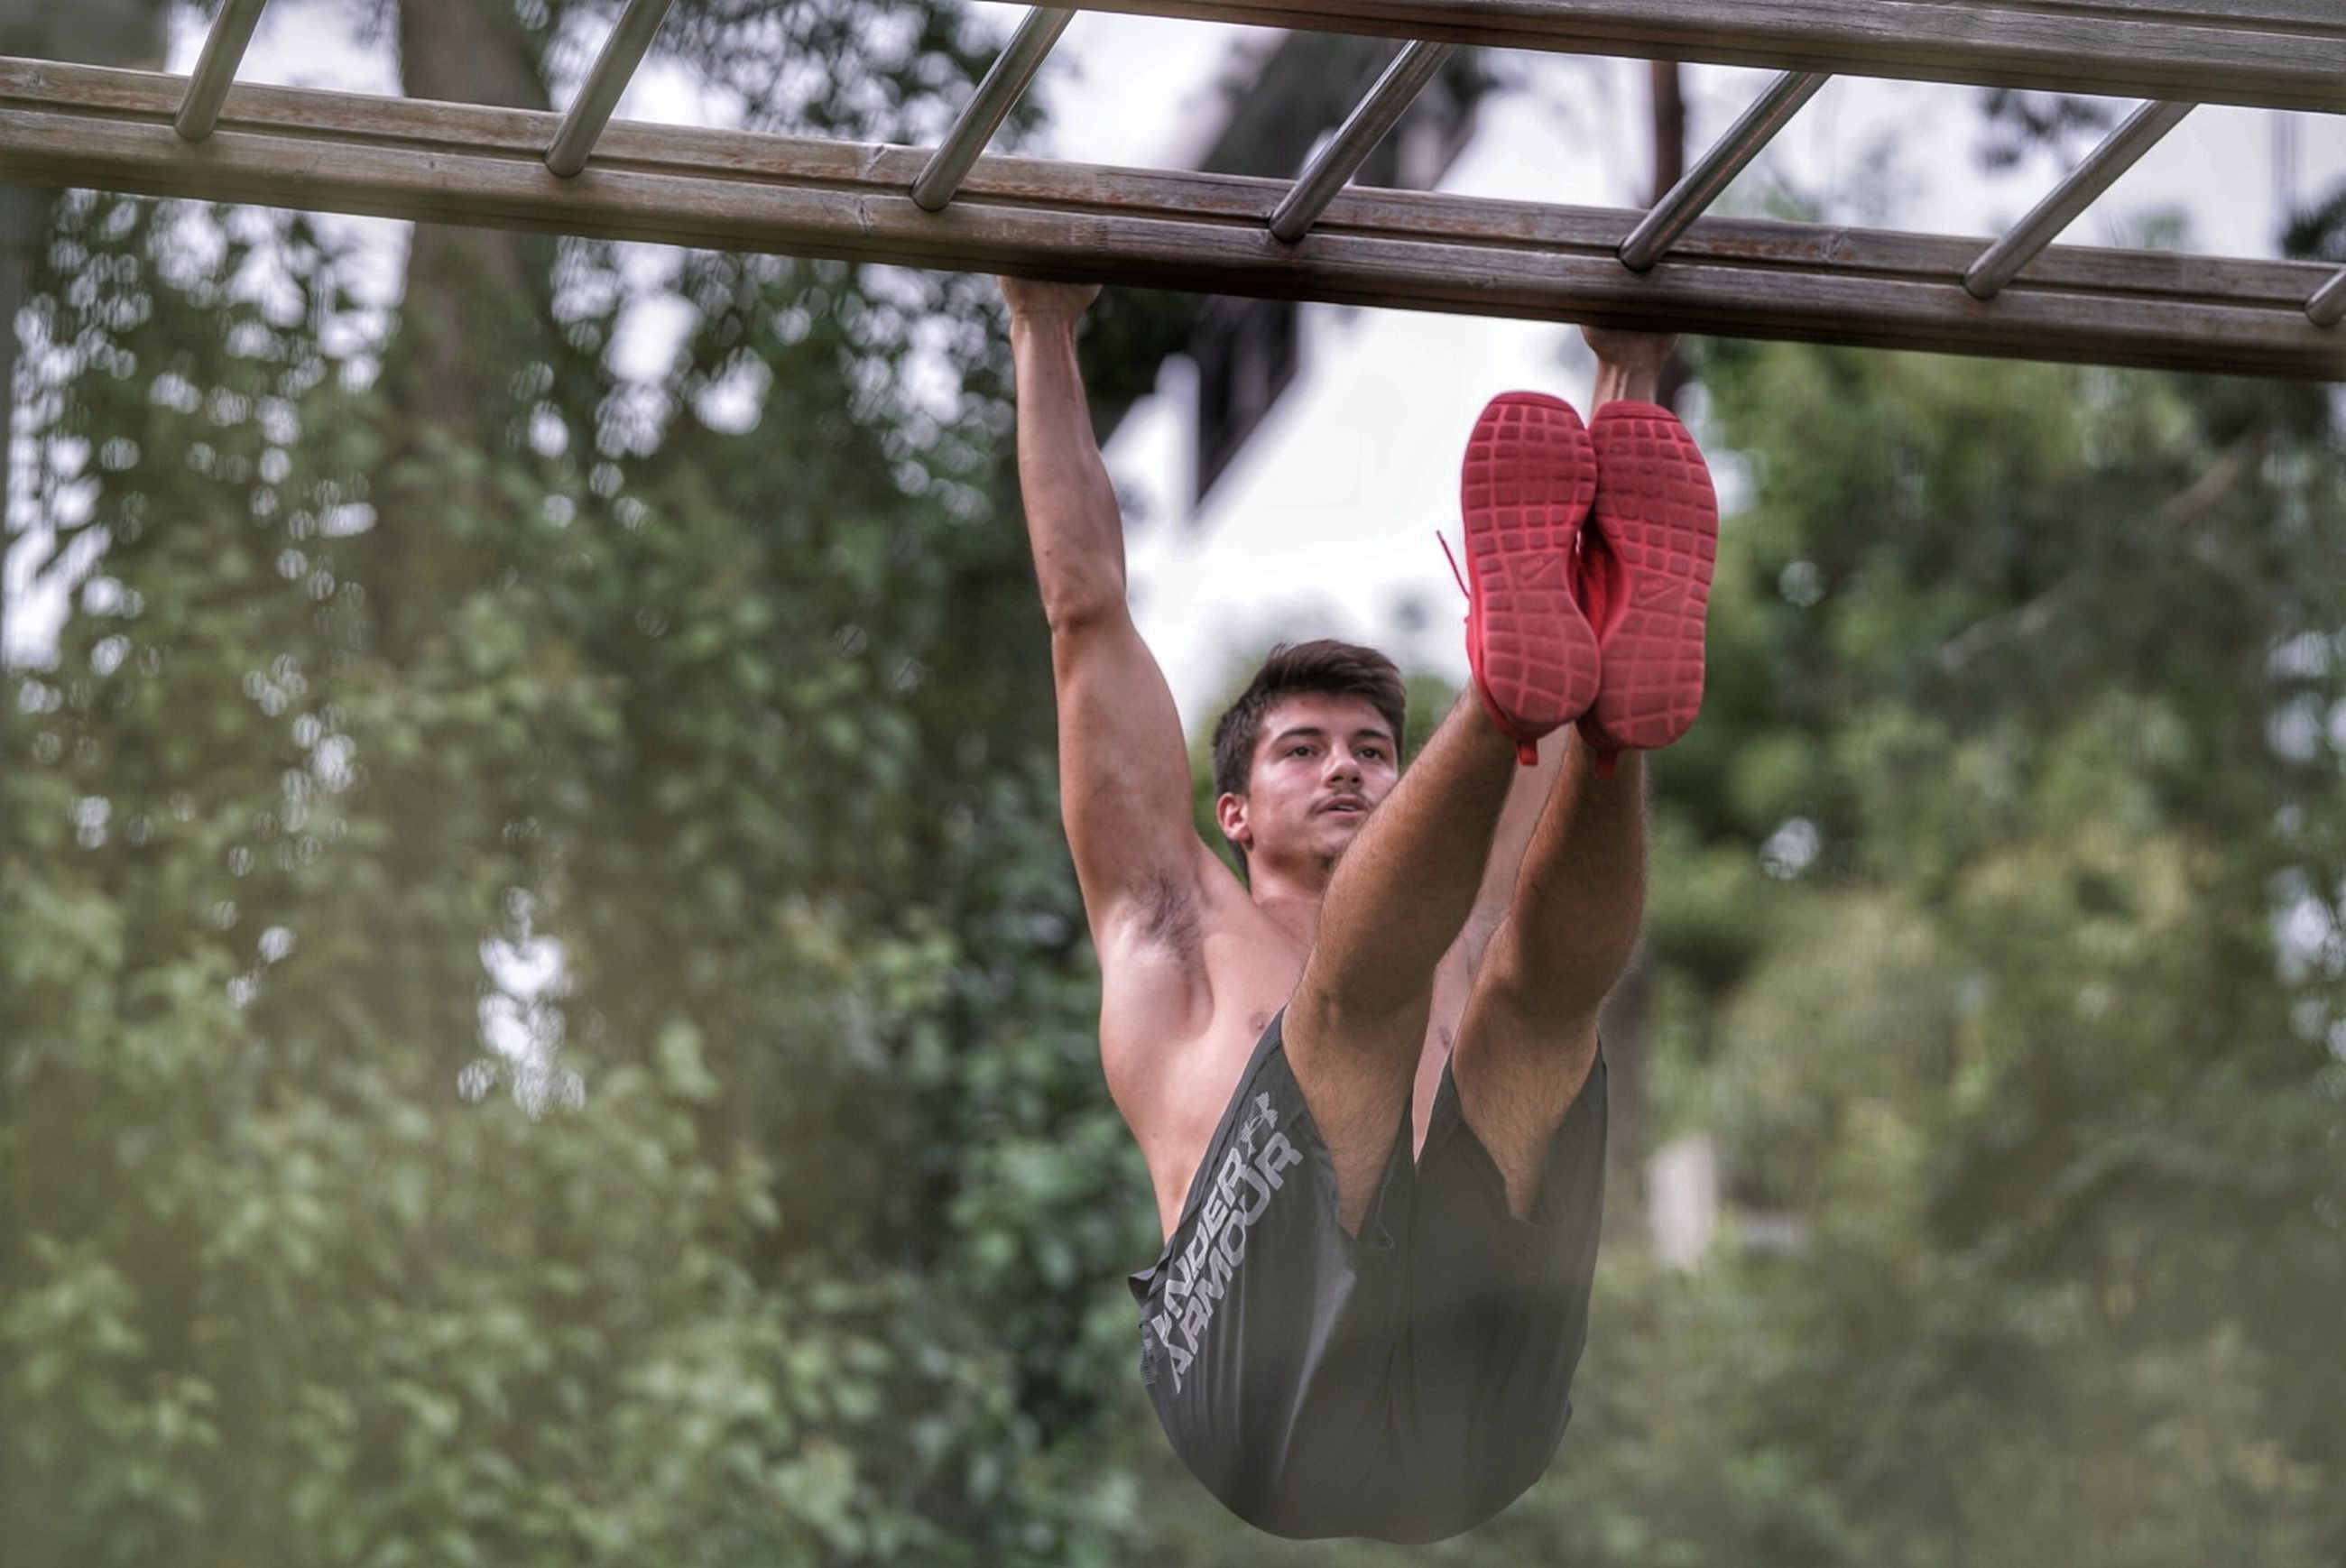 one person, shirtless, lifestyles, men, hanging, real people, sport, day, adult, strength, muscular build, clothing, vitality, young men, young adult, plant, healthy lifestyle, athlete, effort, outdoors